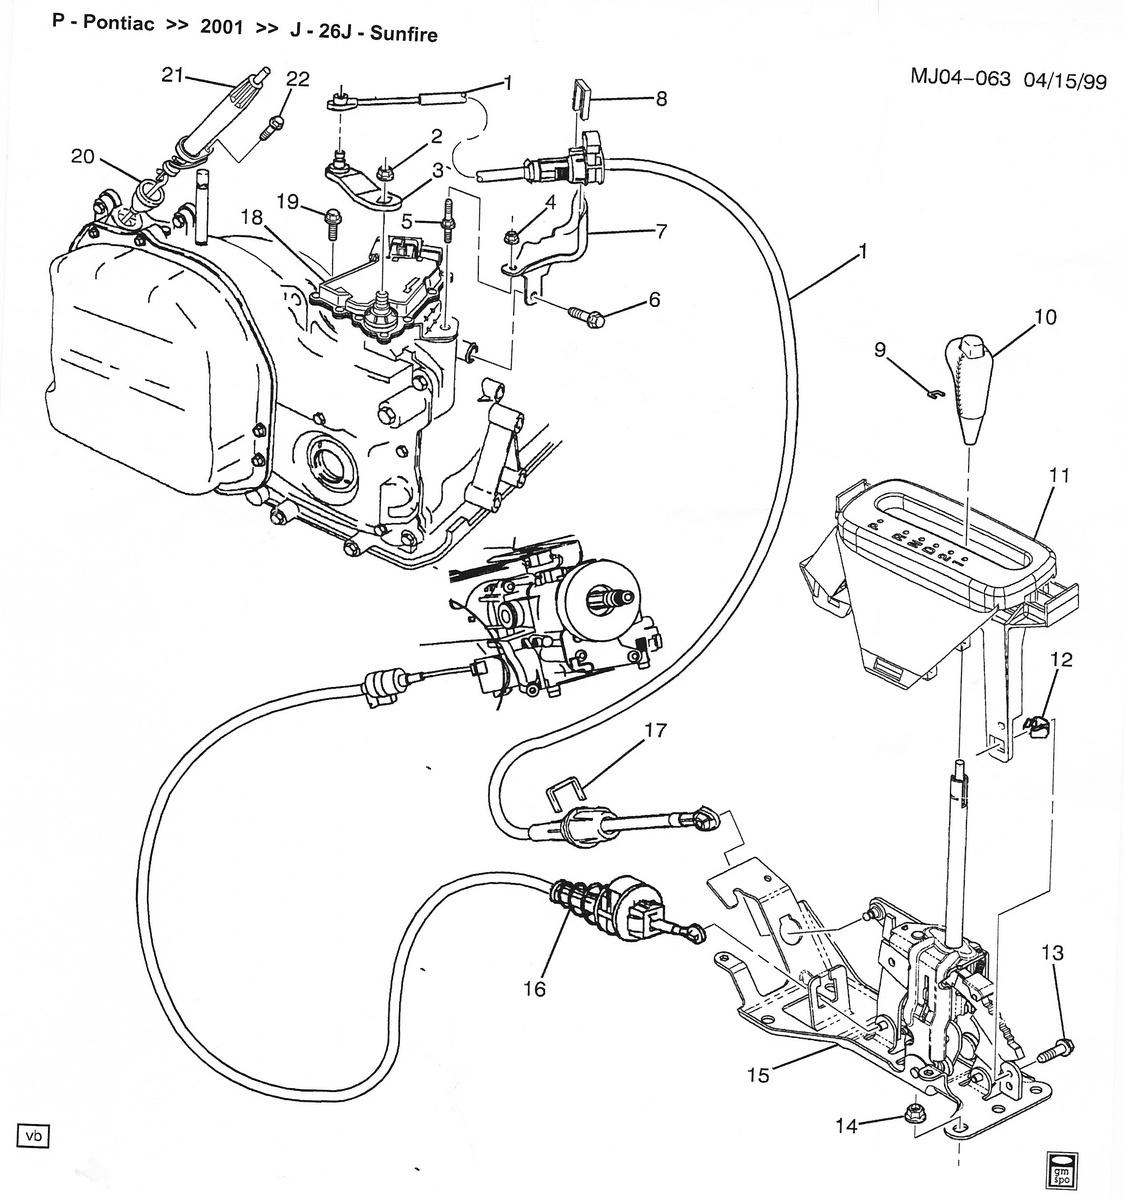 Gm Shift Cable Automatic Transmission Diagrams - Today Wiring